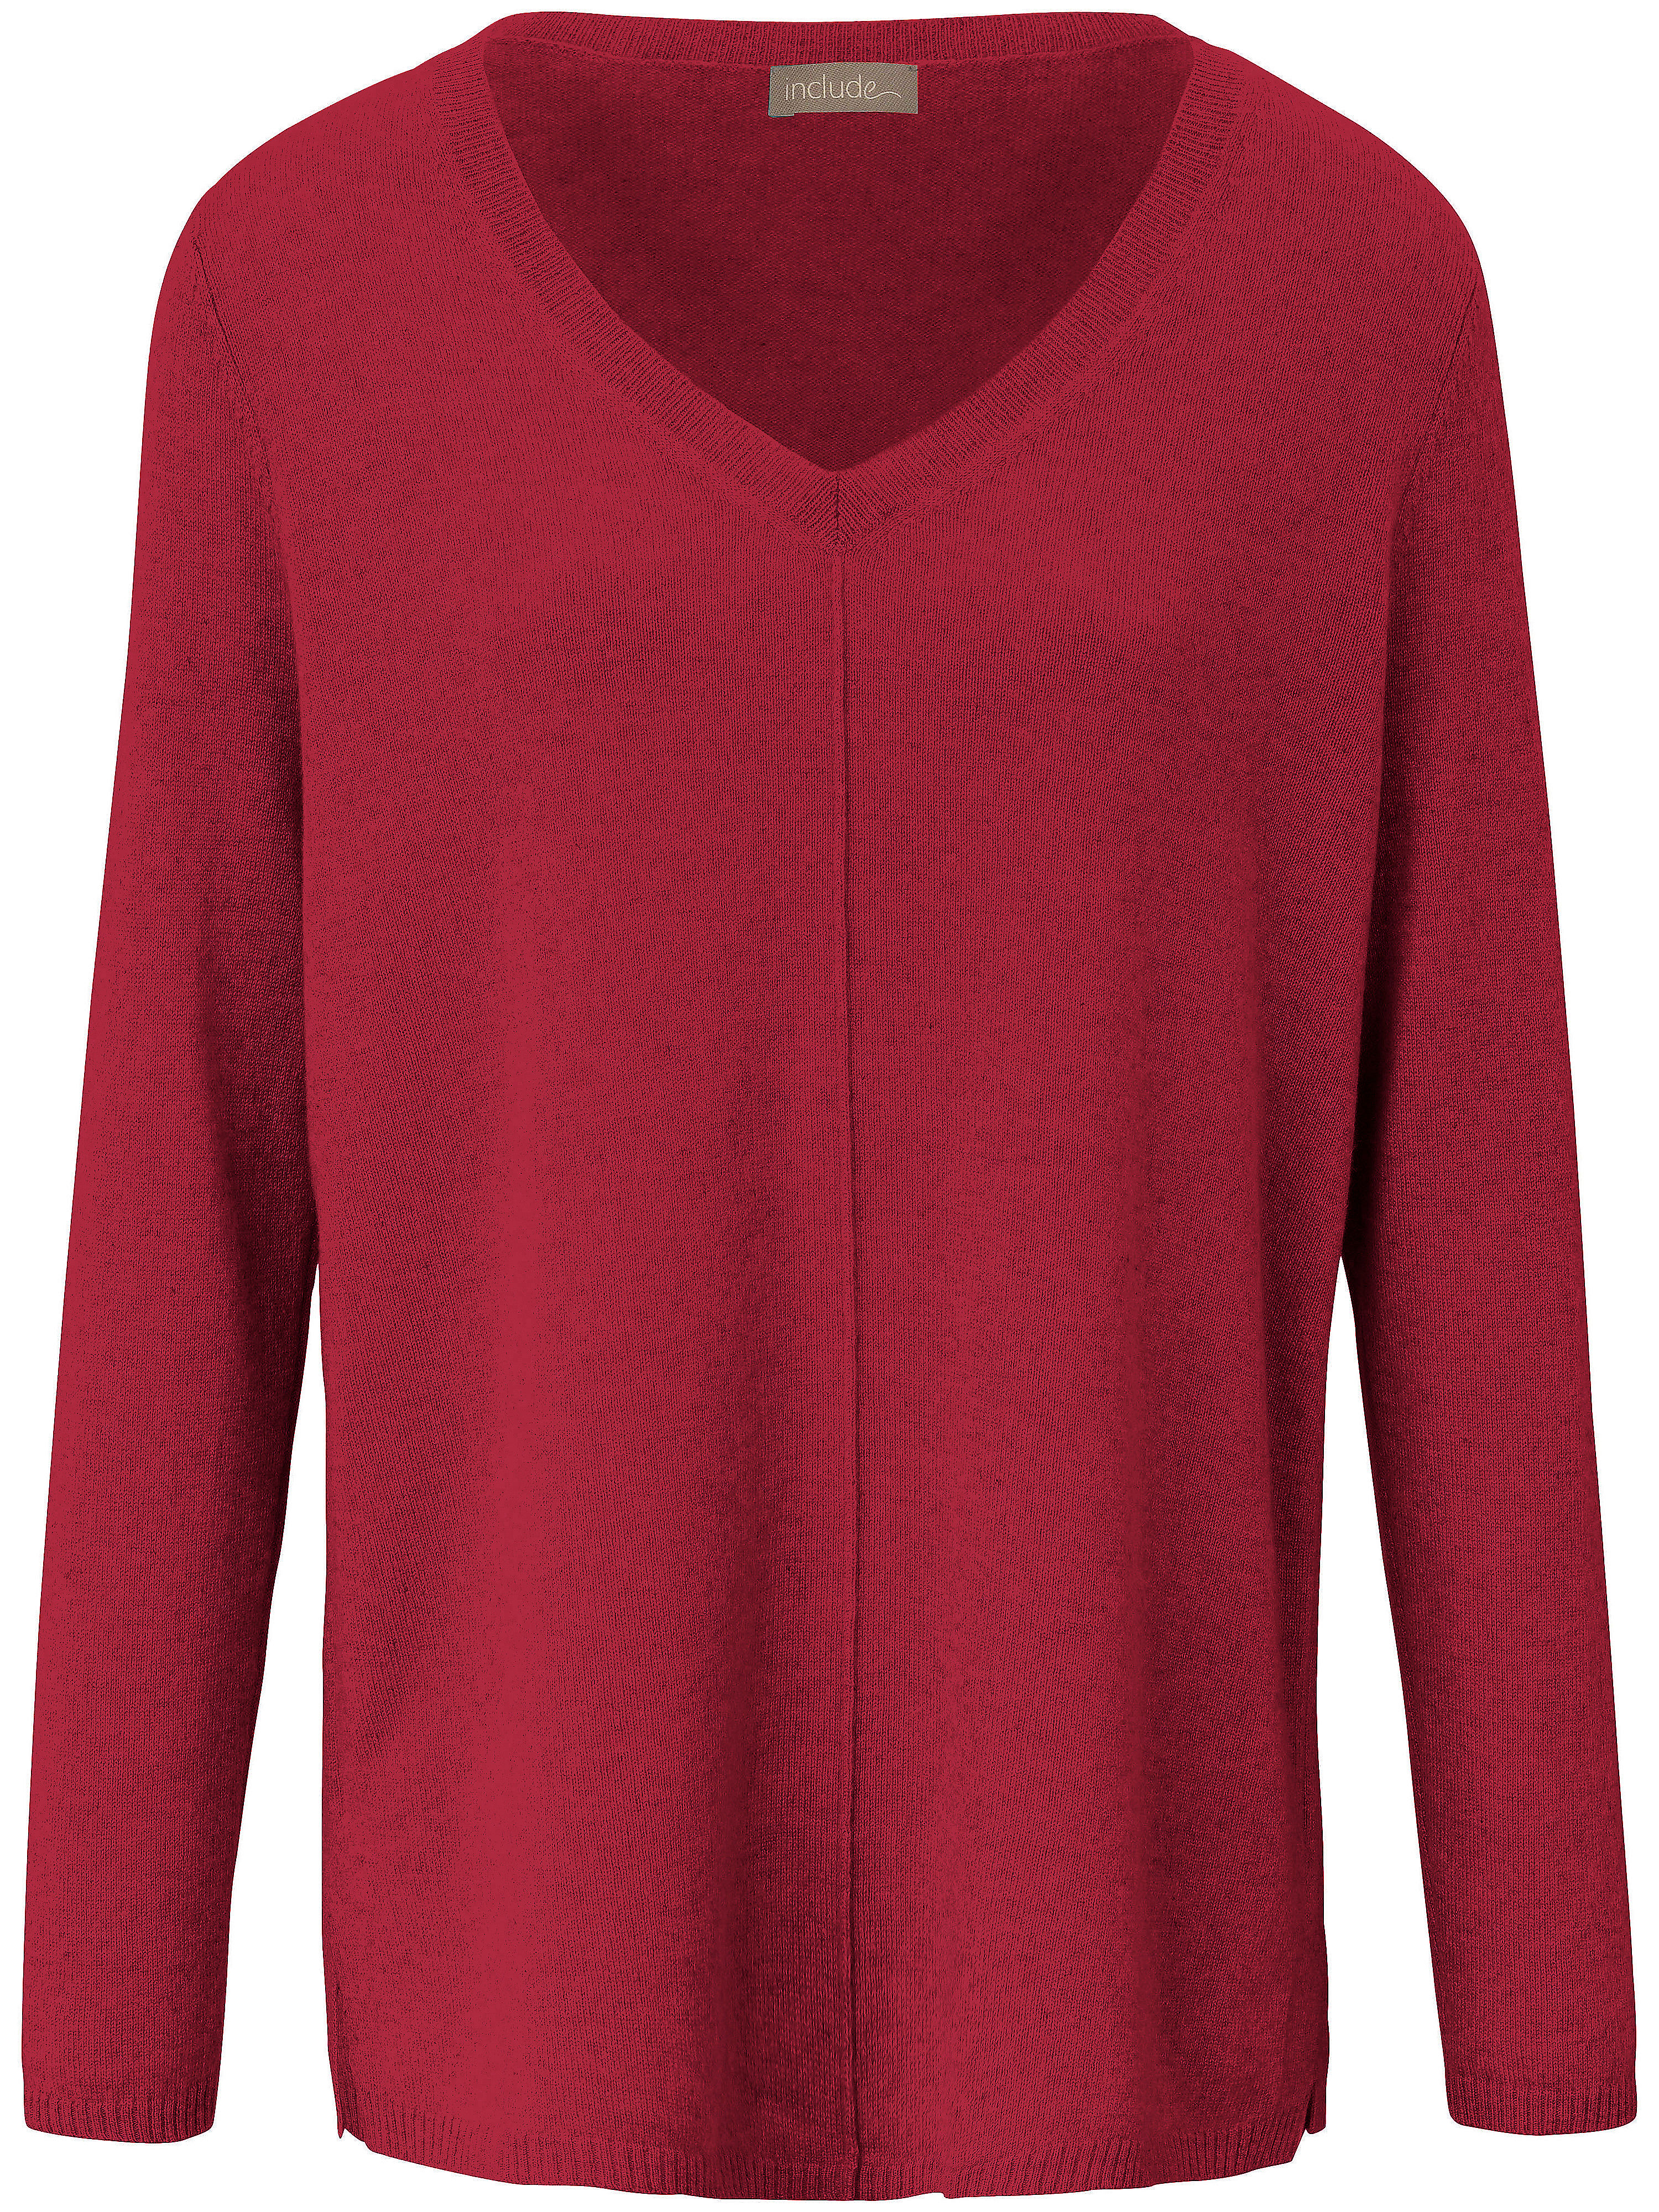 V-Pullover aus 100% PREMIUM Kaschmir include rot | Bekleidung > Pullover | include